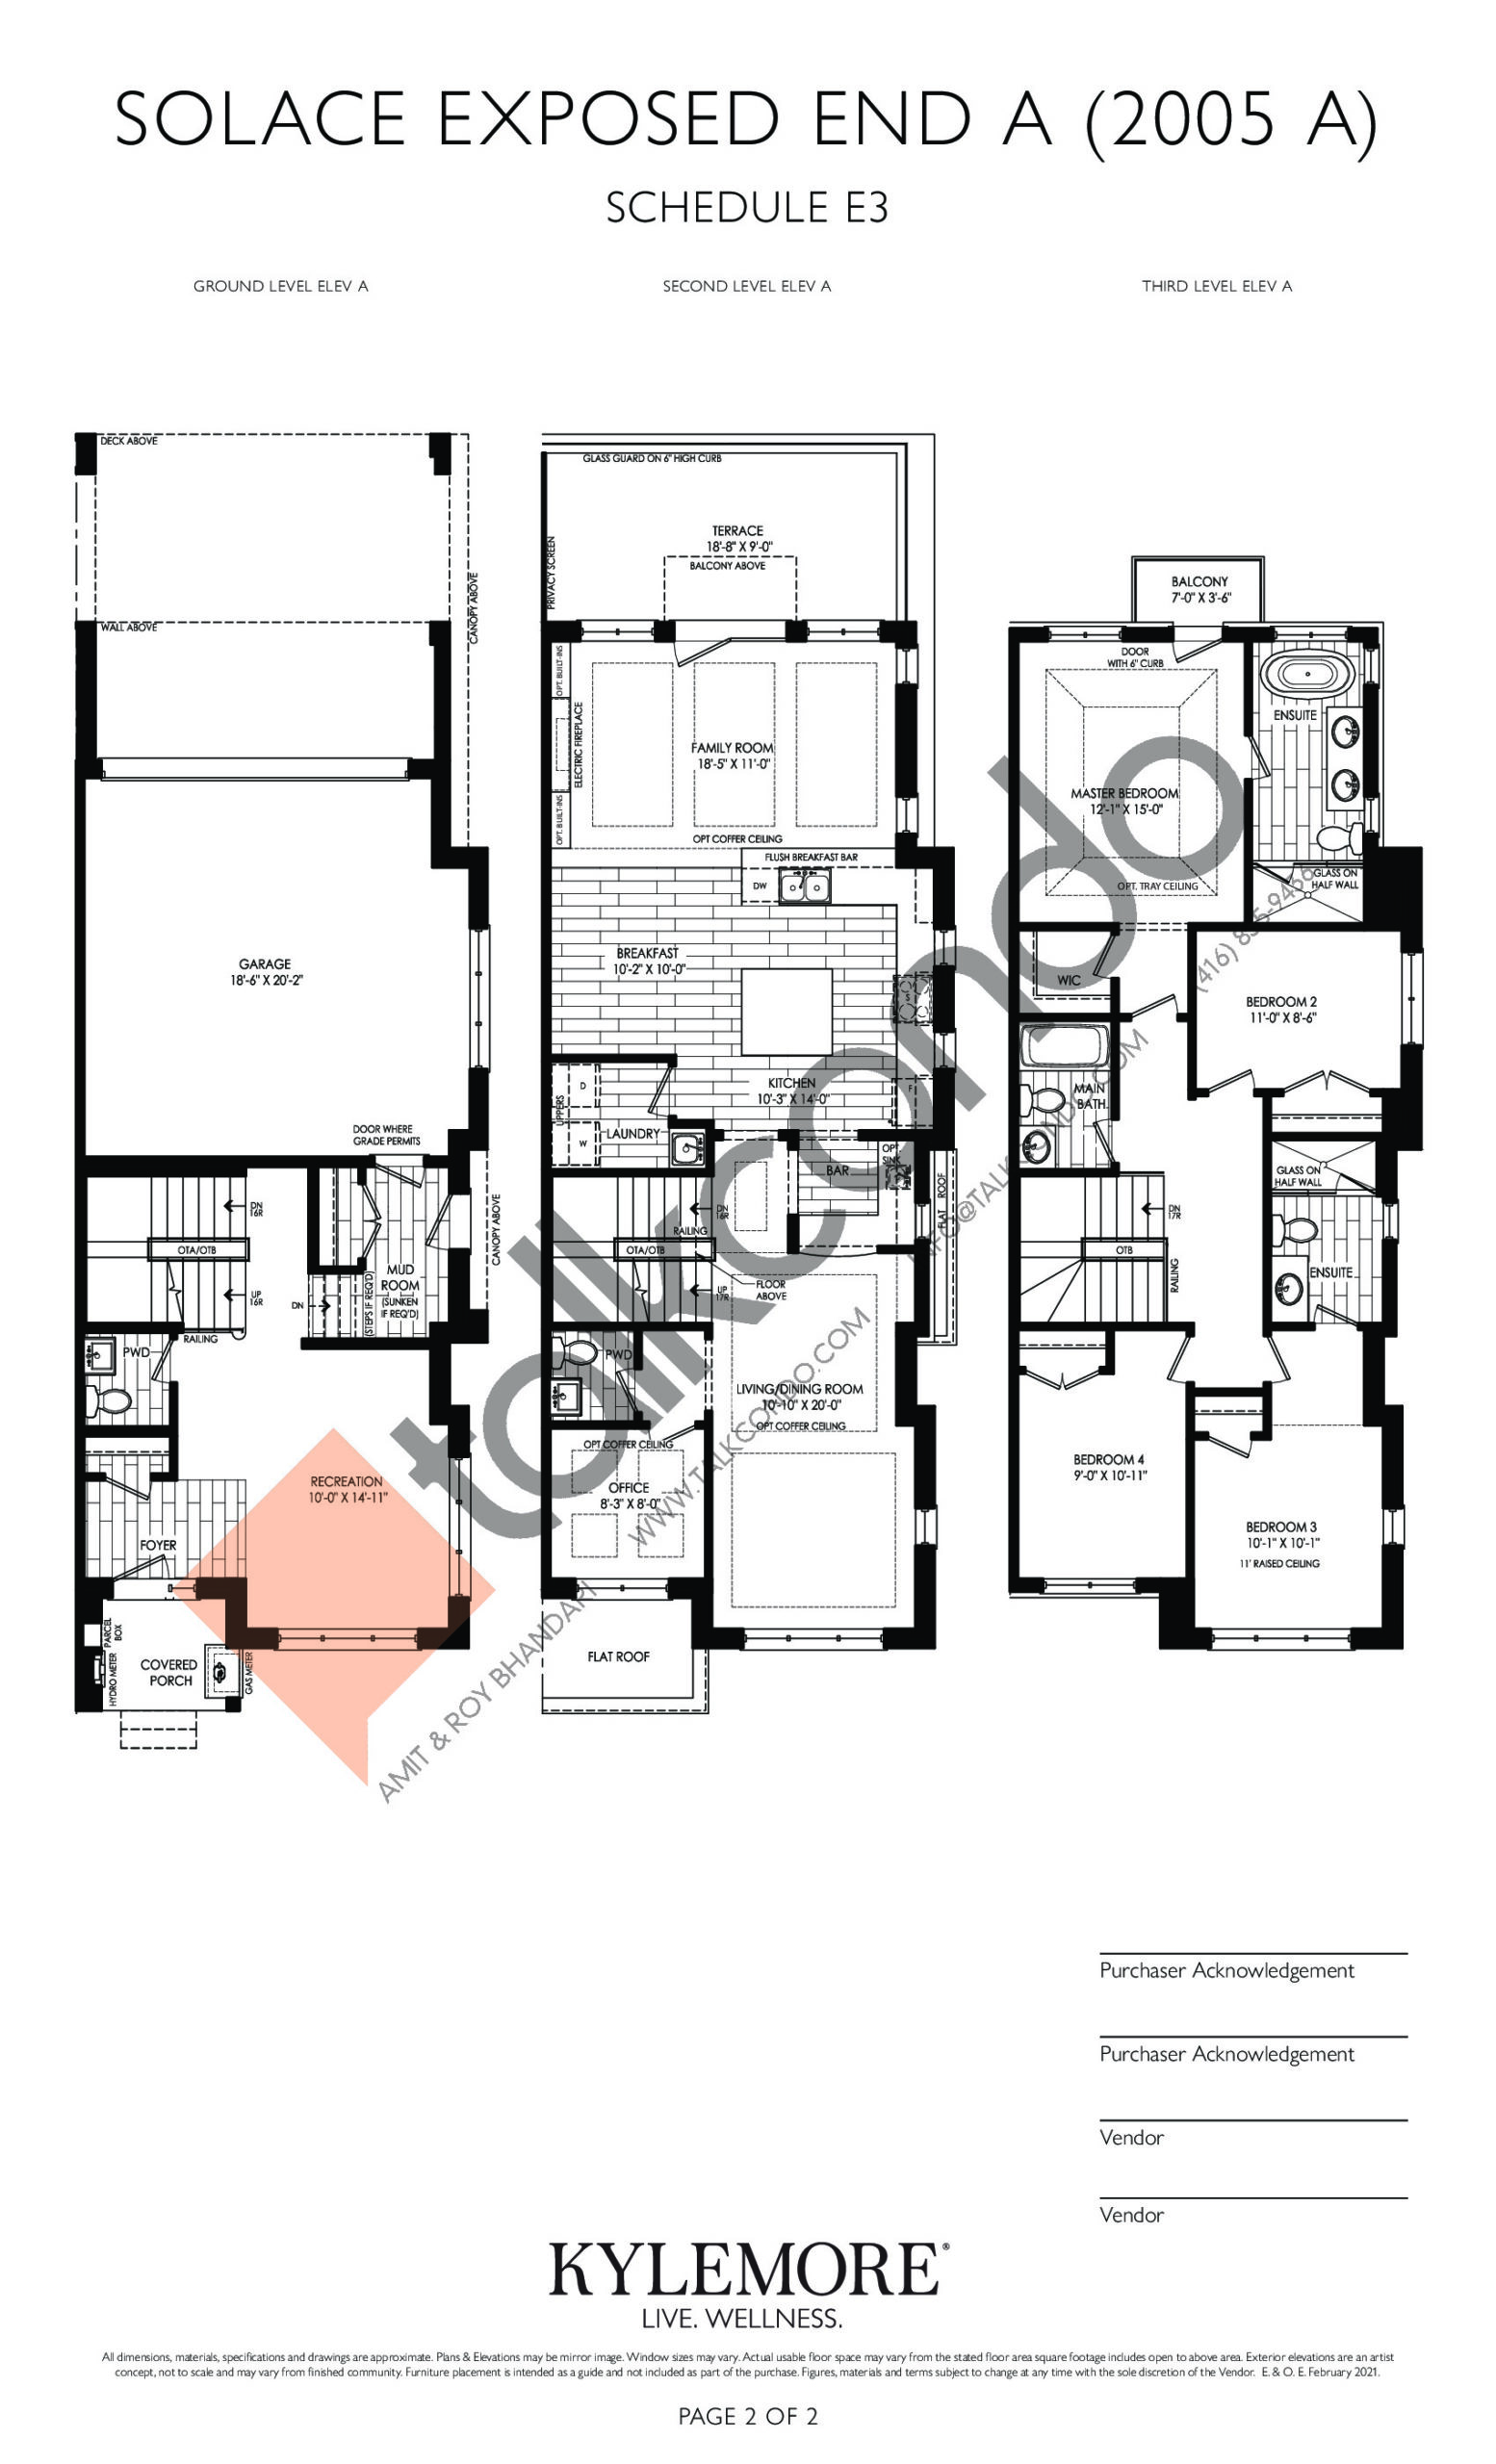 Solace Exposed End A Floor Plan at Angus Glen South Village - 2770 sq.ft